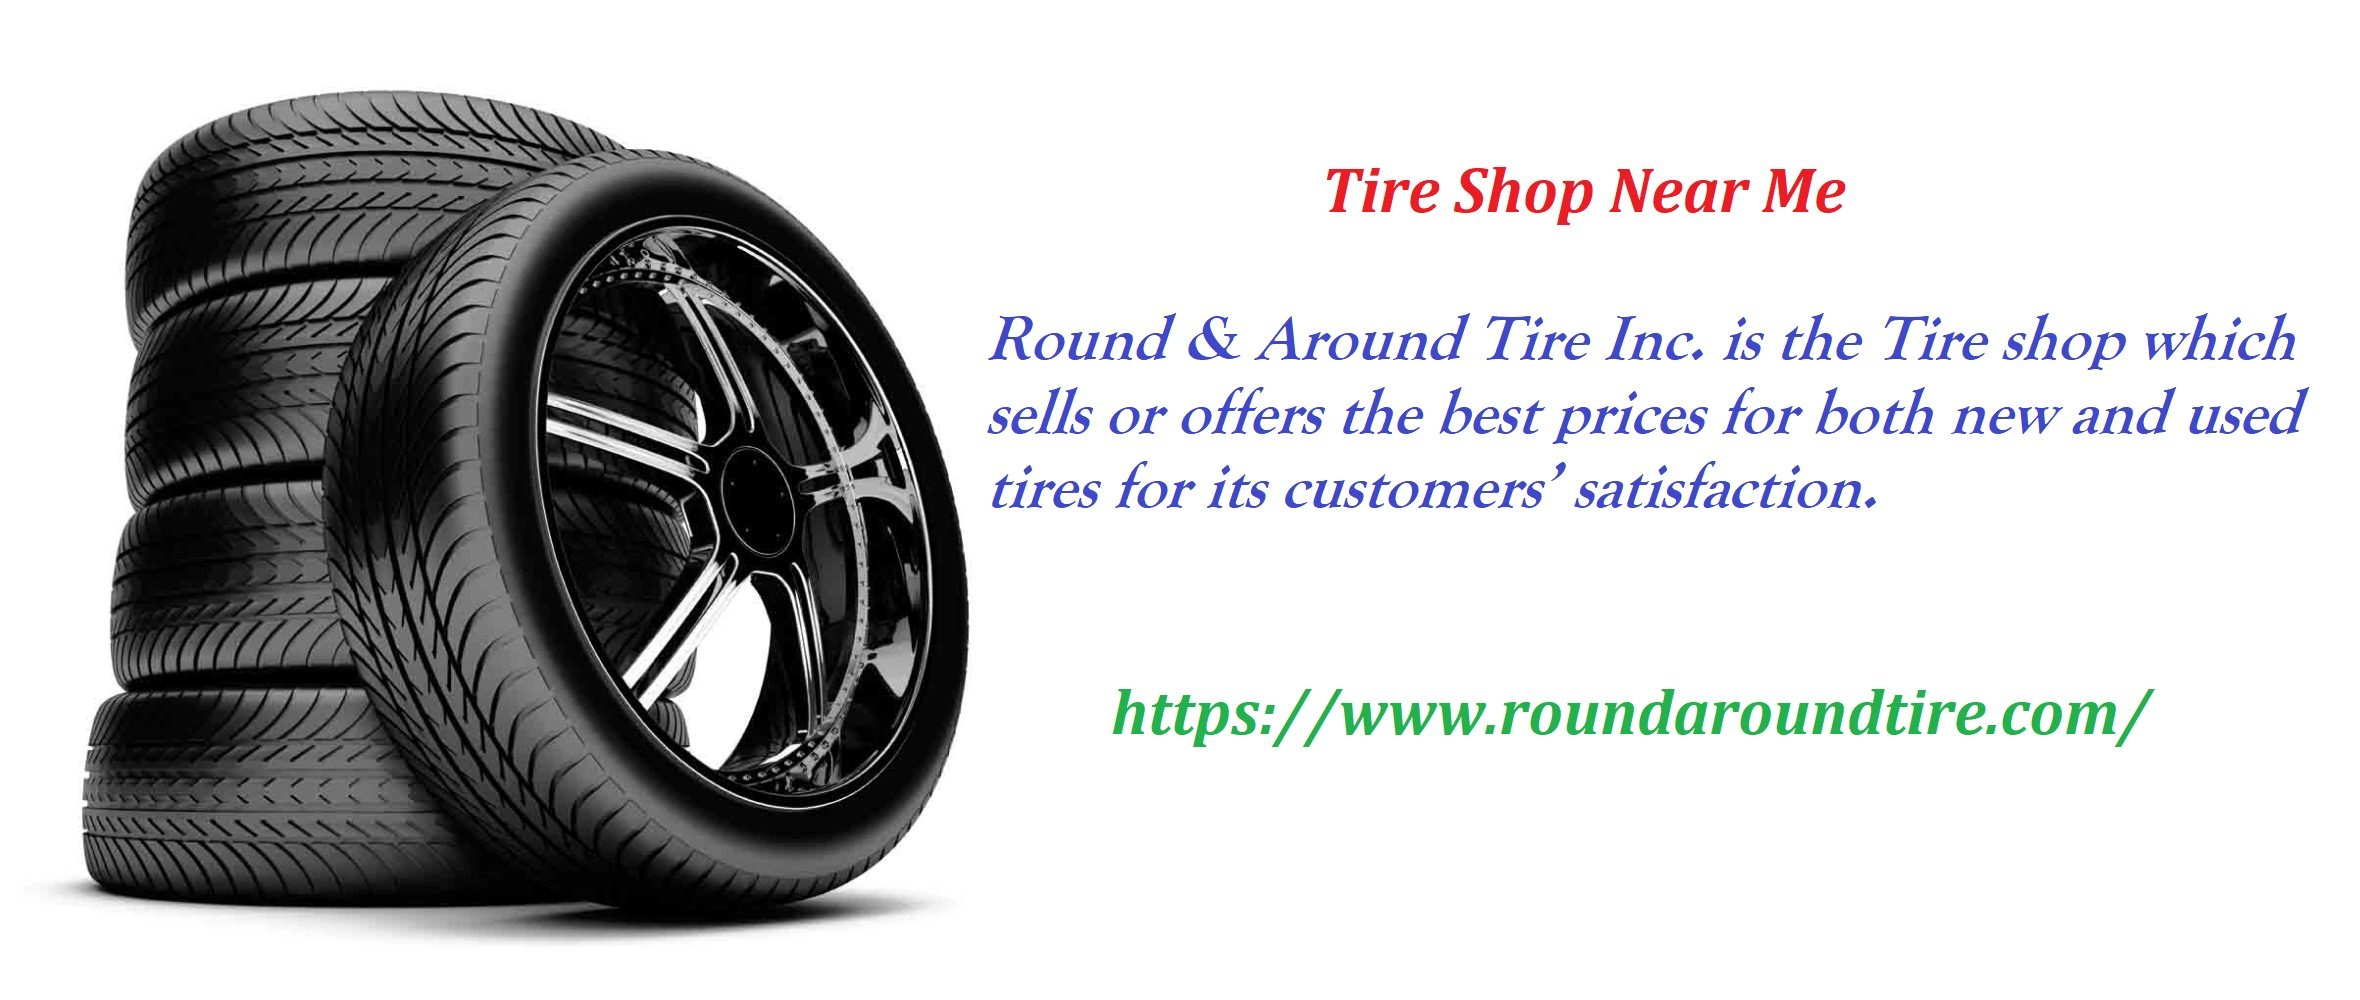 Tire Shop Near Mee